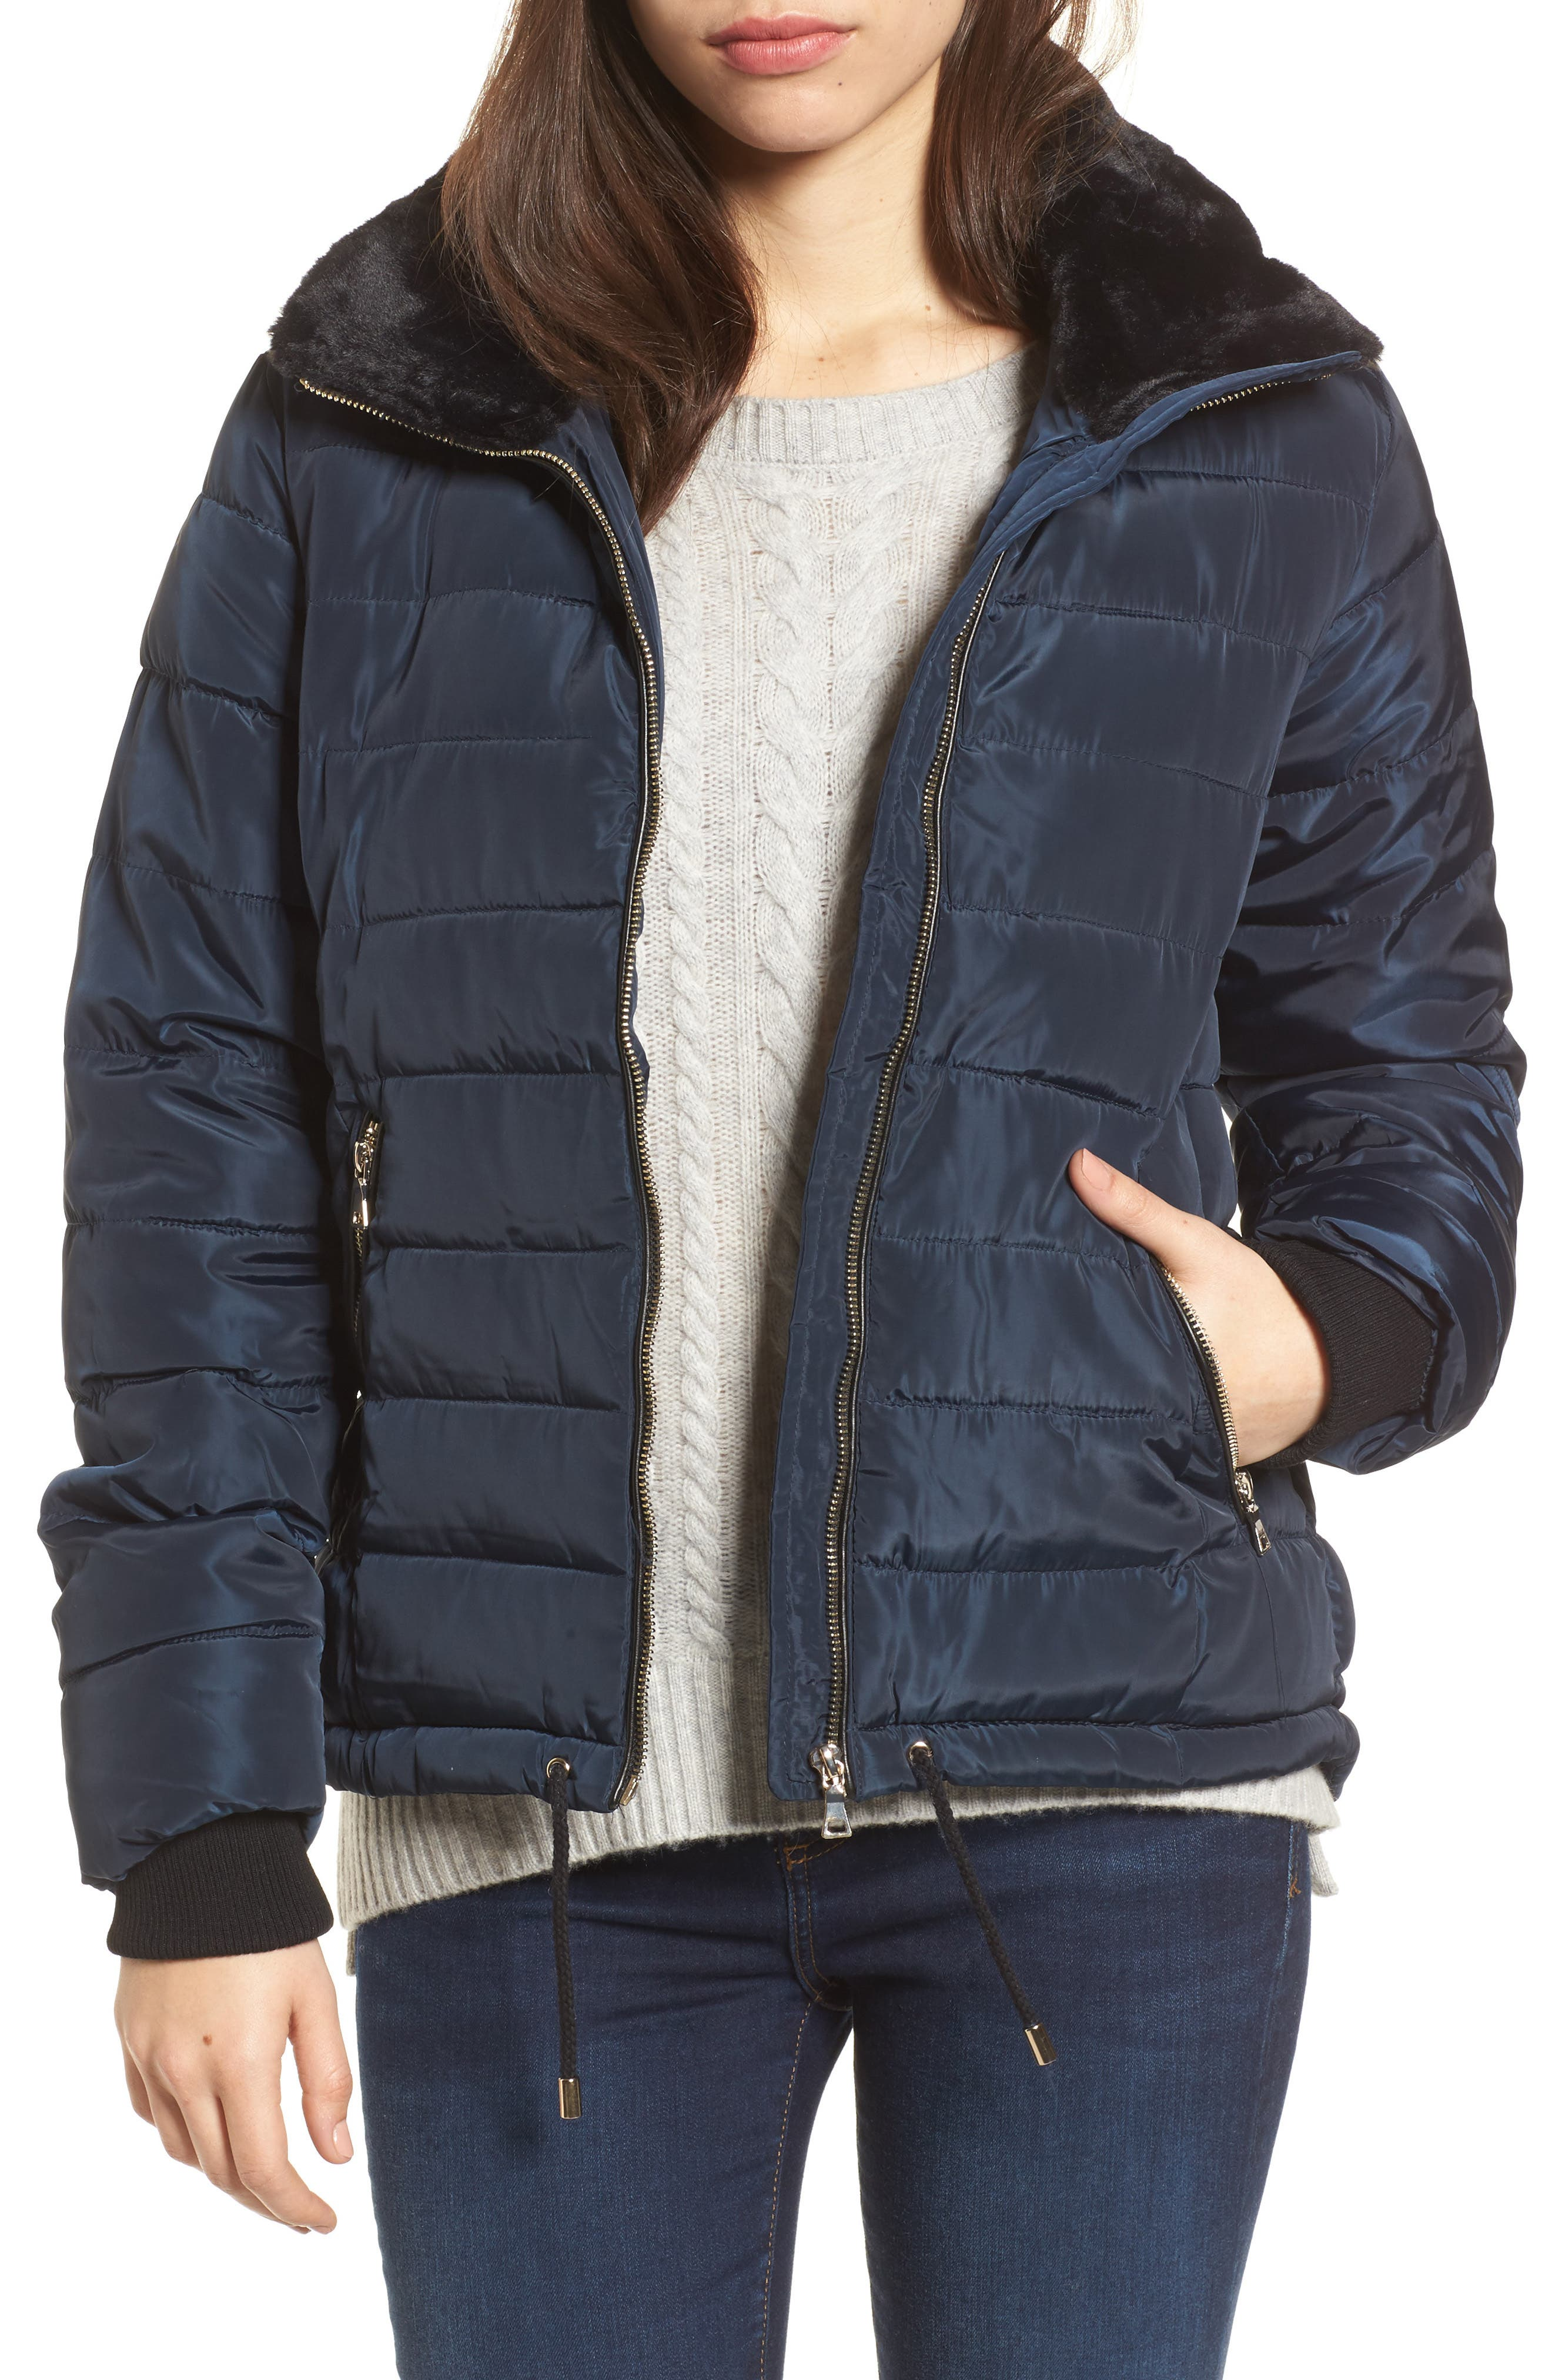 Dorothy Perkins Puffer Jacket with Faux Fur Collar Lining